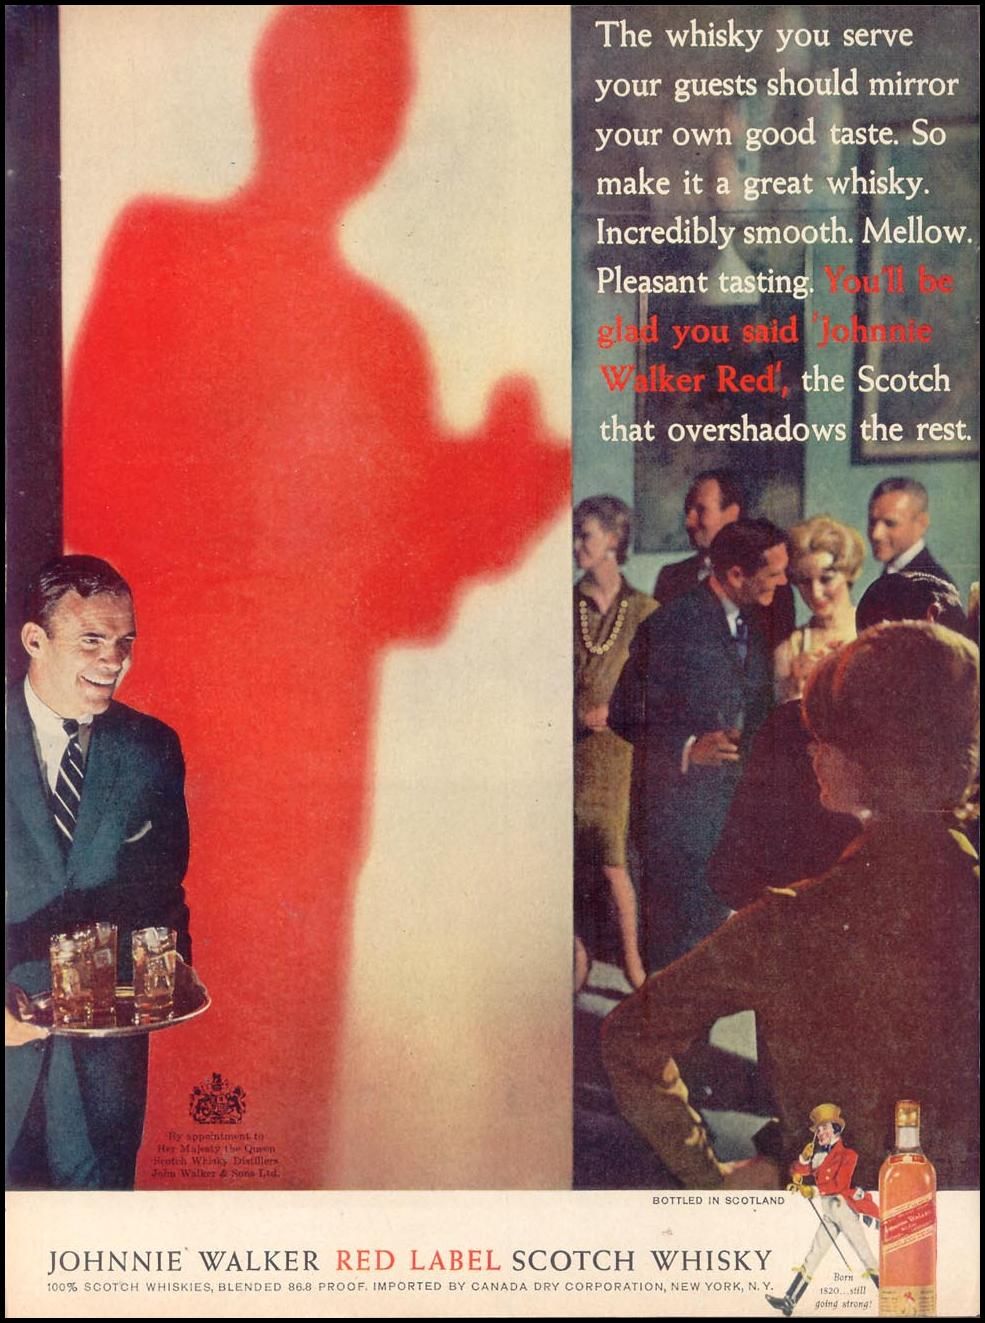 JOHNNIE WALKER SCOTCH WHISKEY TIME 11/17/1961